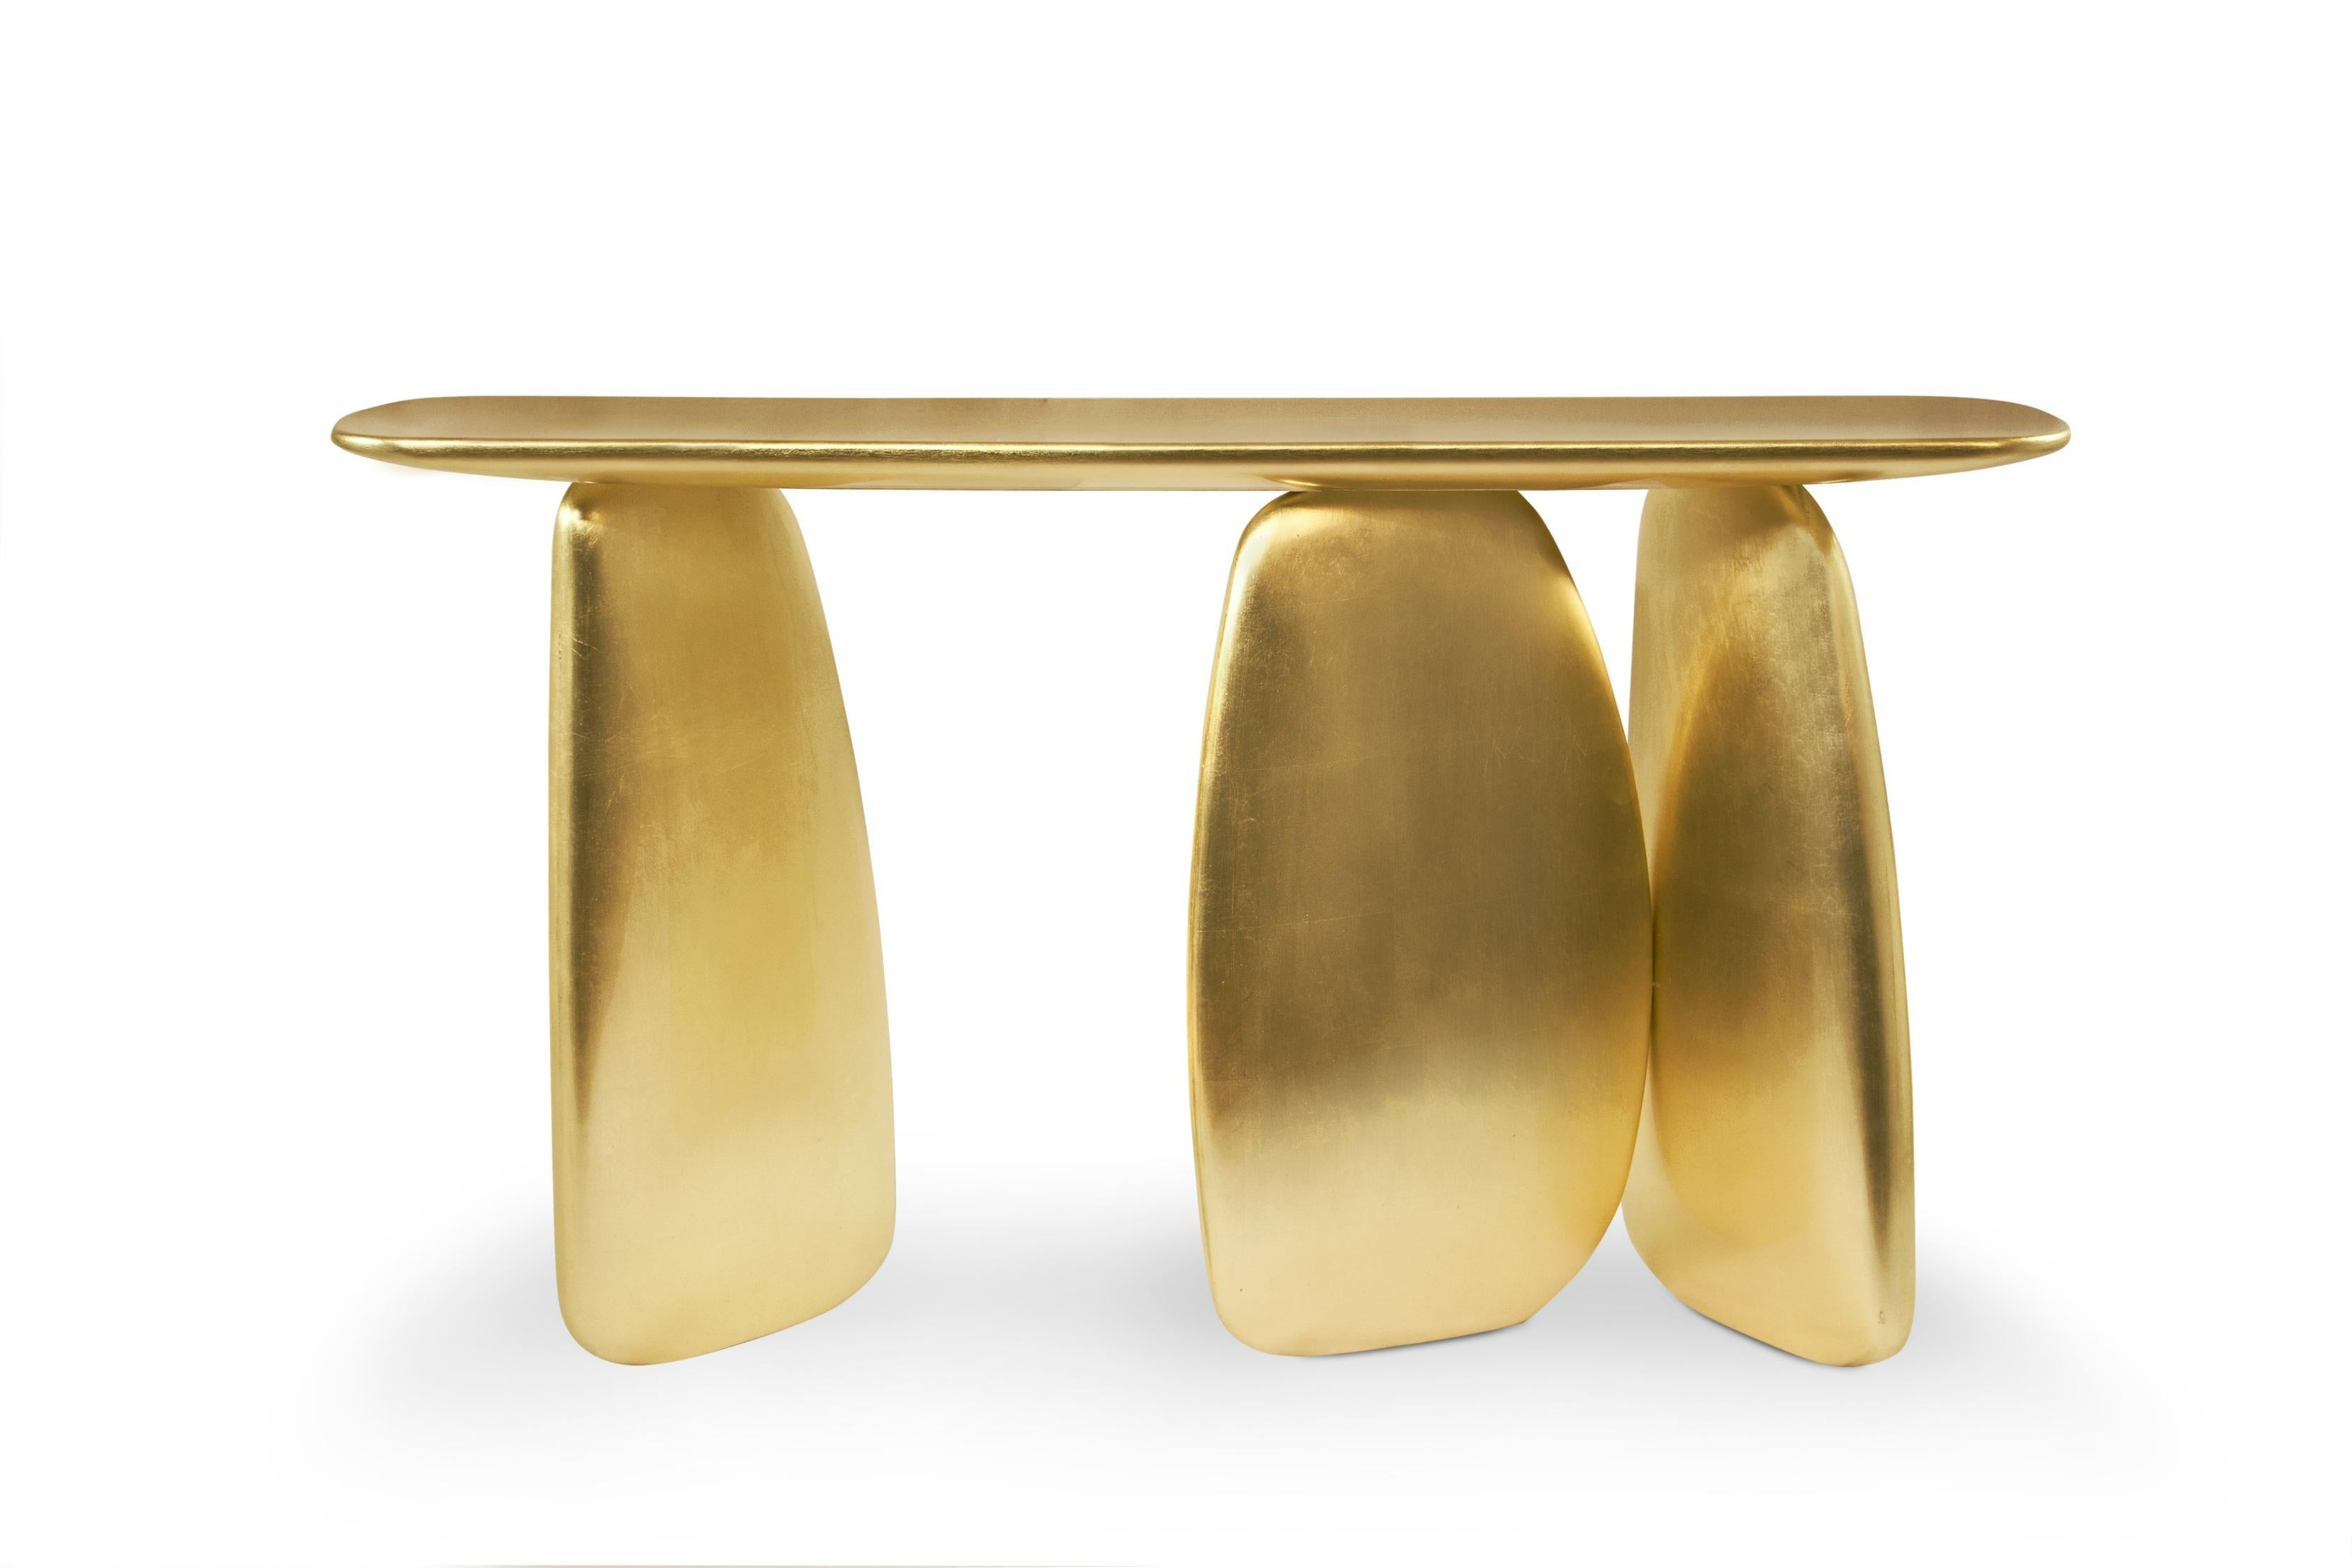 ... Console Table In Gold Leaf For Sale. Dolmens Are Ancient Stone  Monuments From The Neolithic Period. These Unique Structures Were The  Inspiration